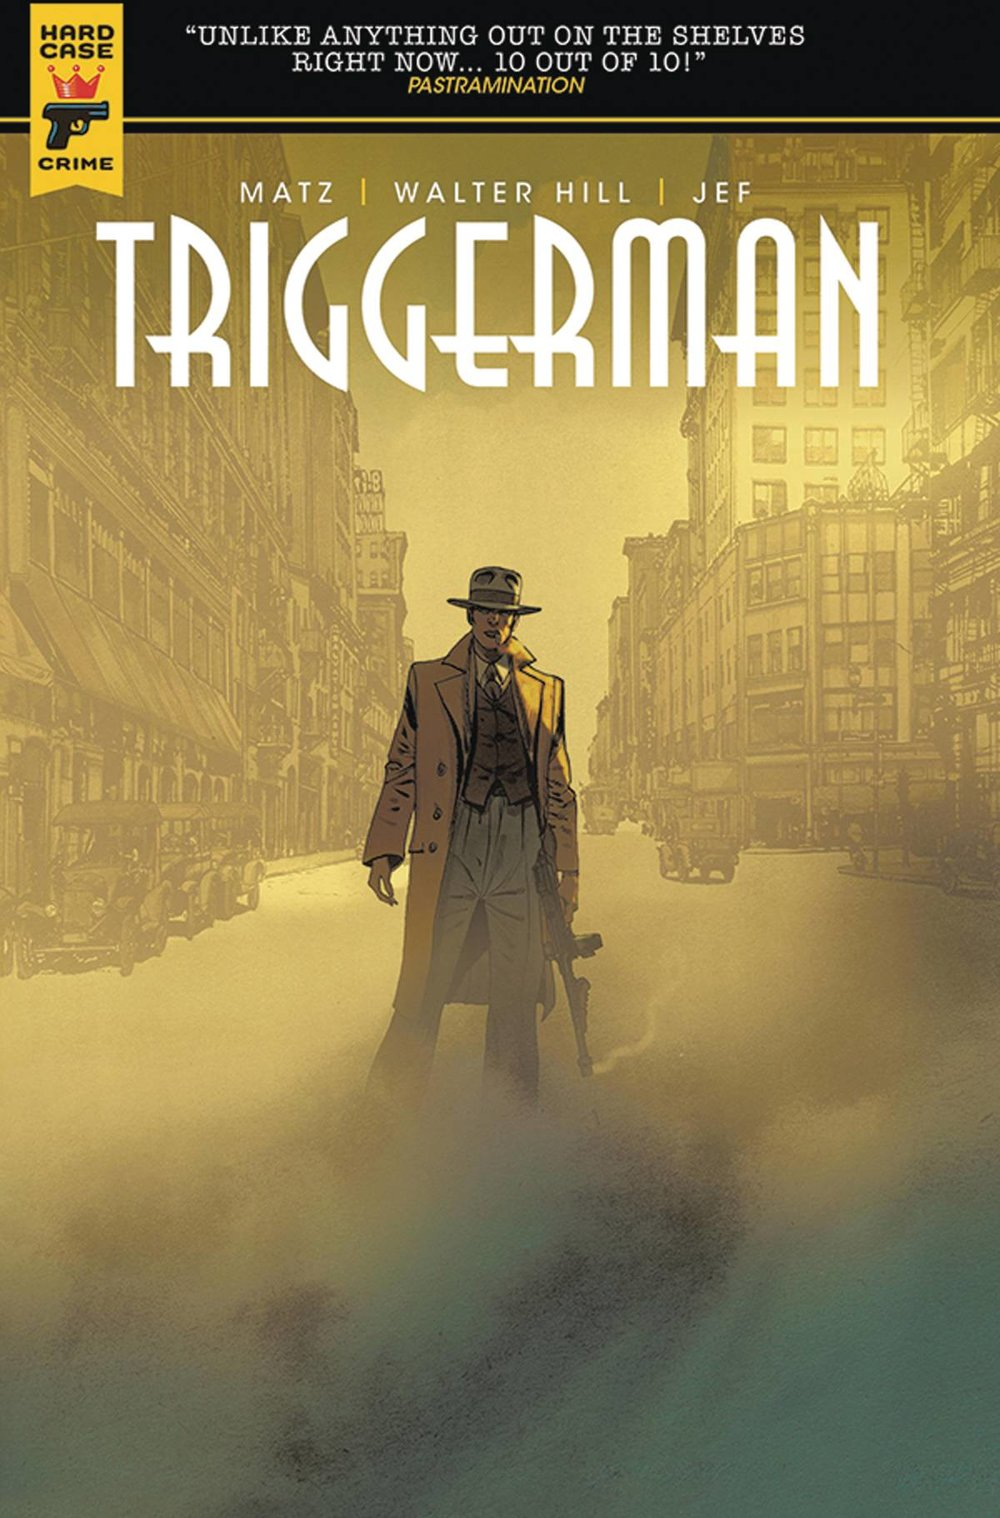 HARD CASE CRIME TRIGGERMAN TP.jpg